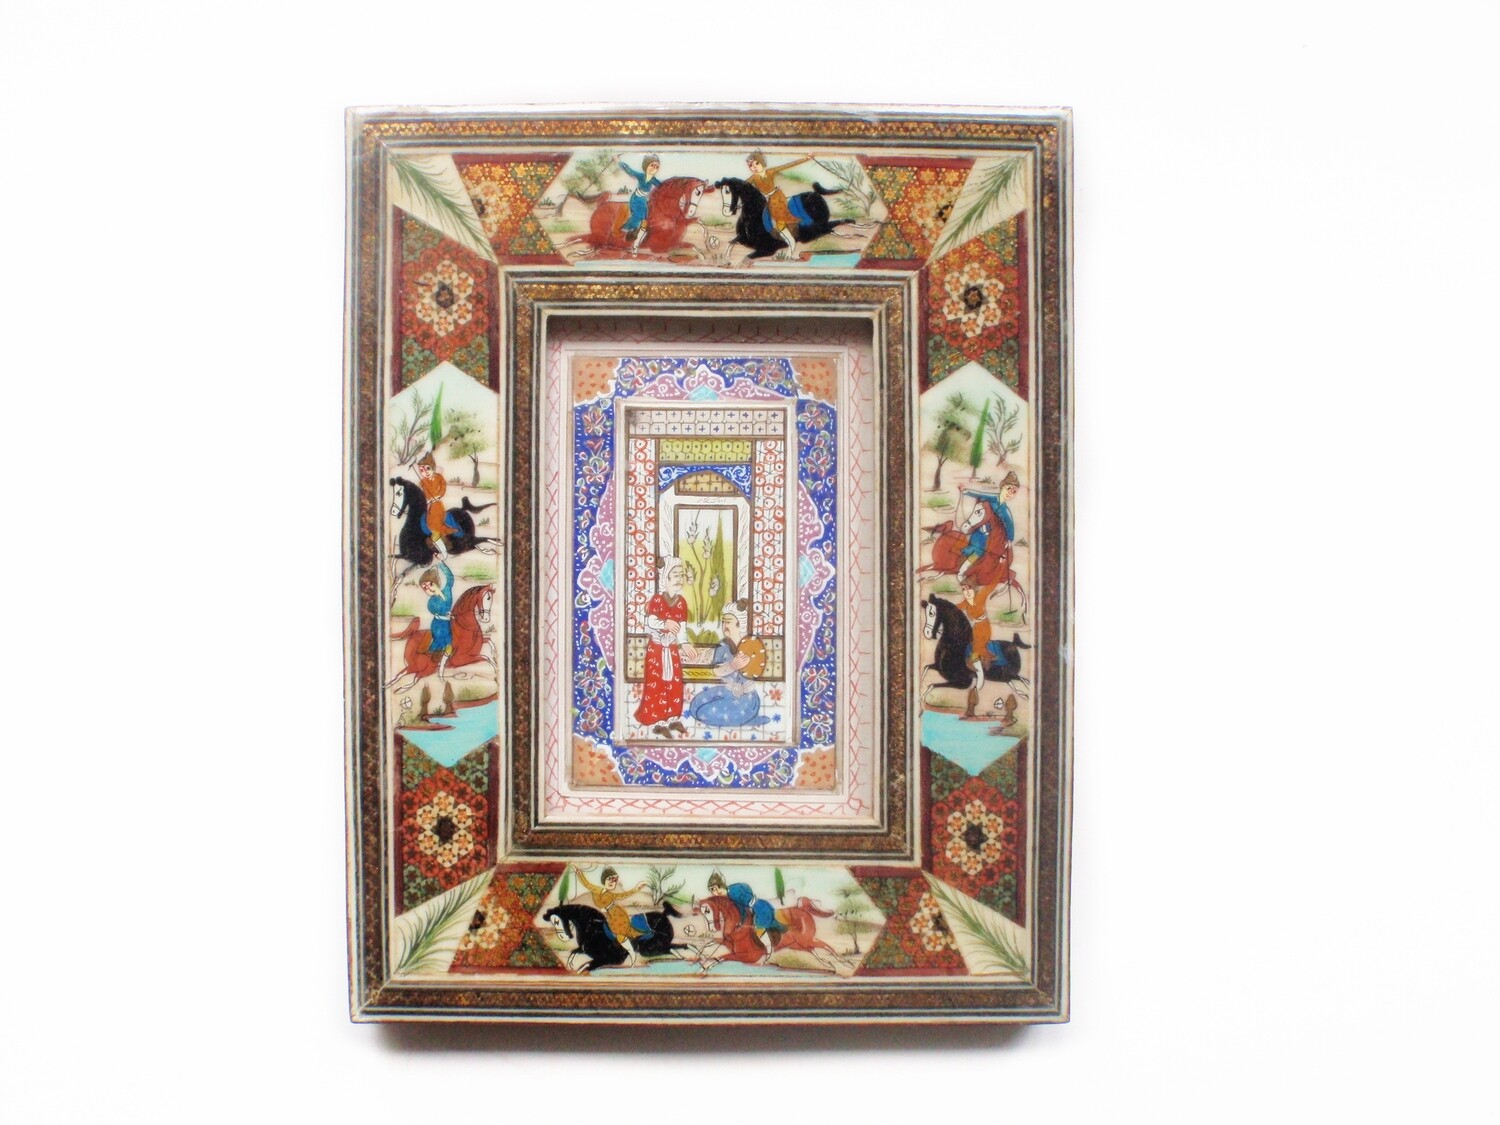 Vintage Persian Khatam Frame Miniature Chogan Painting on Bone